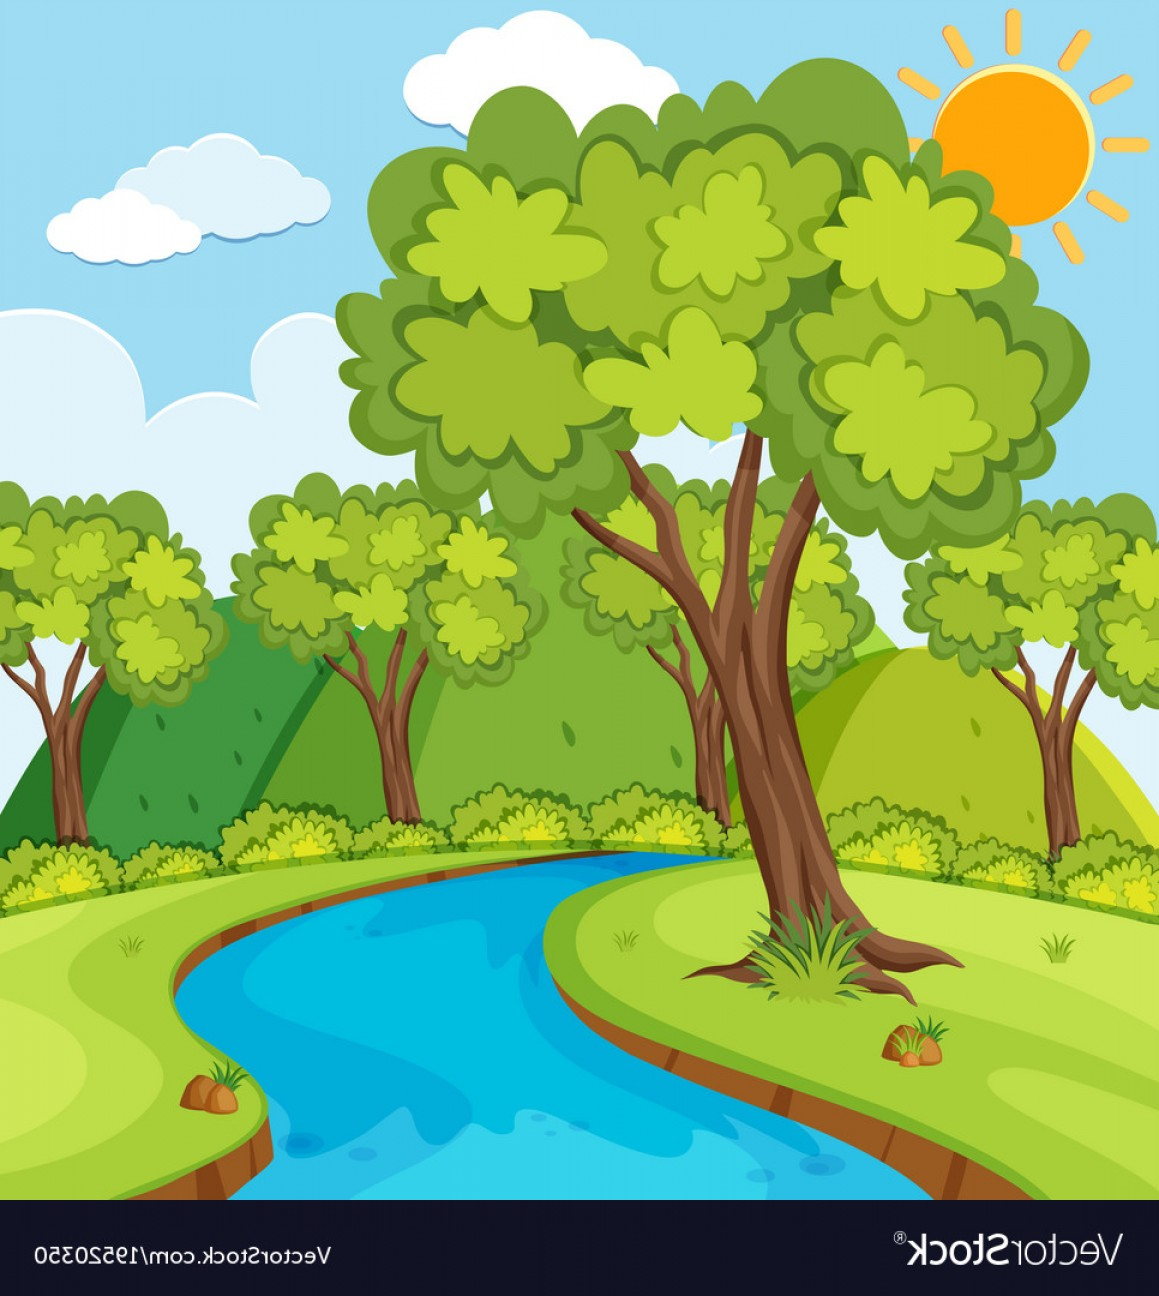 River Vector Art: Forest Scene With Trees And River Vector